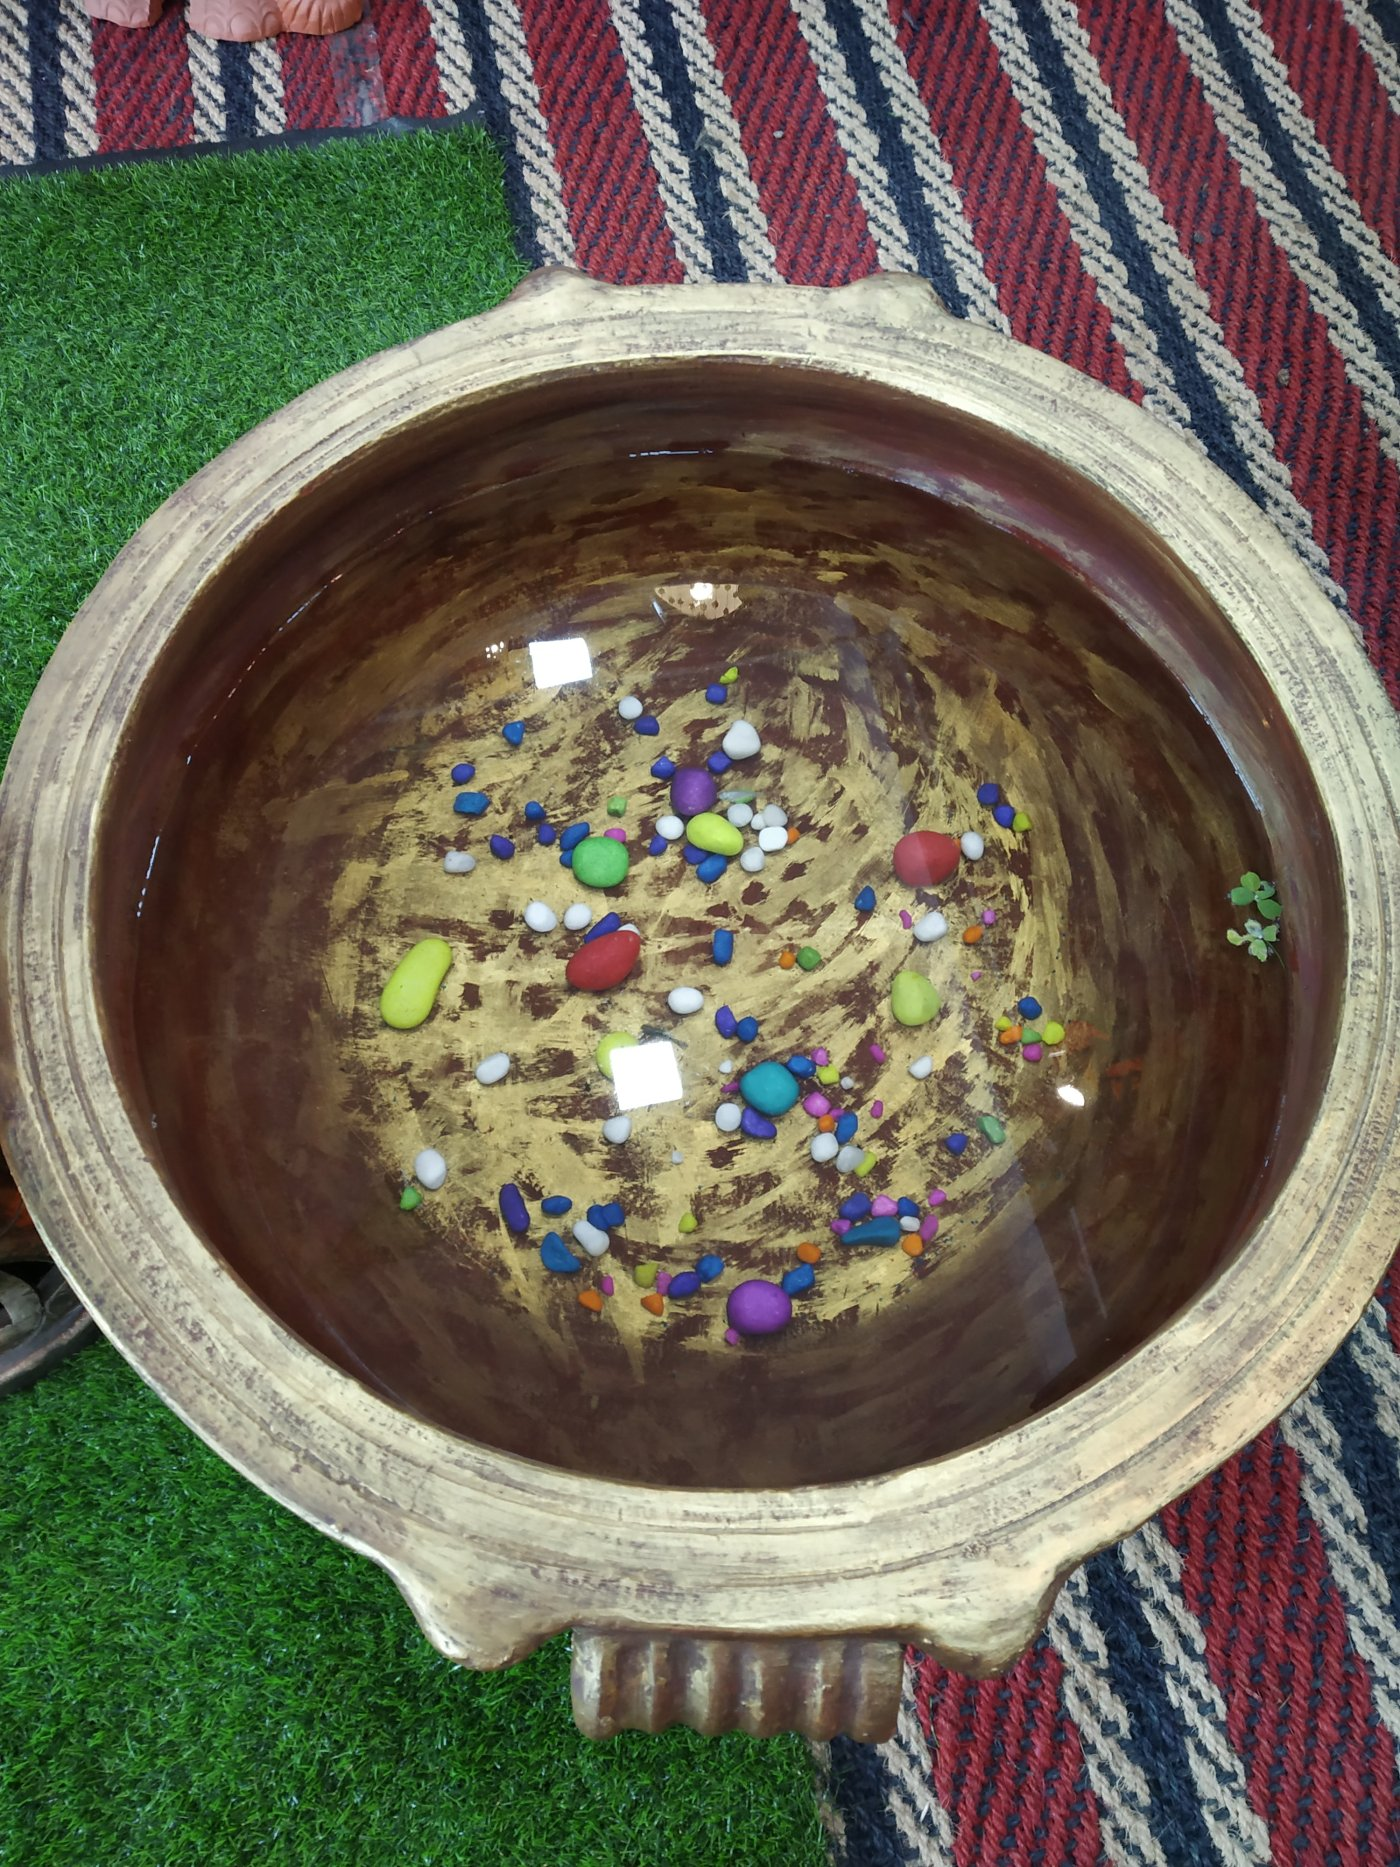 The ready to use fish pond made in the shape of uruli, a brass vessel of Kerala.